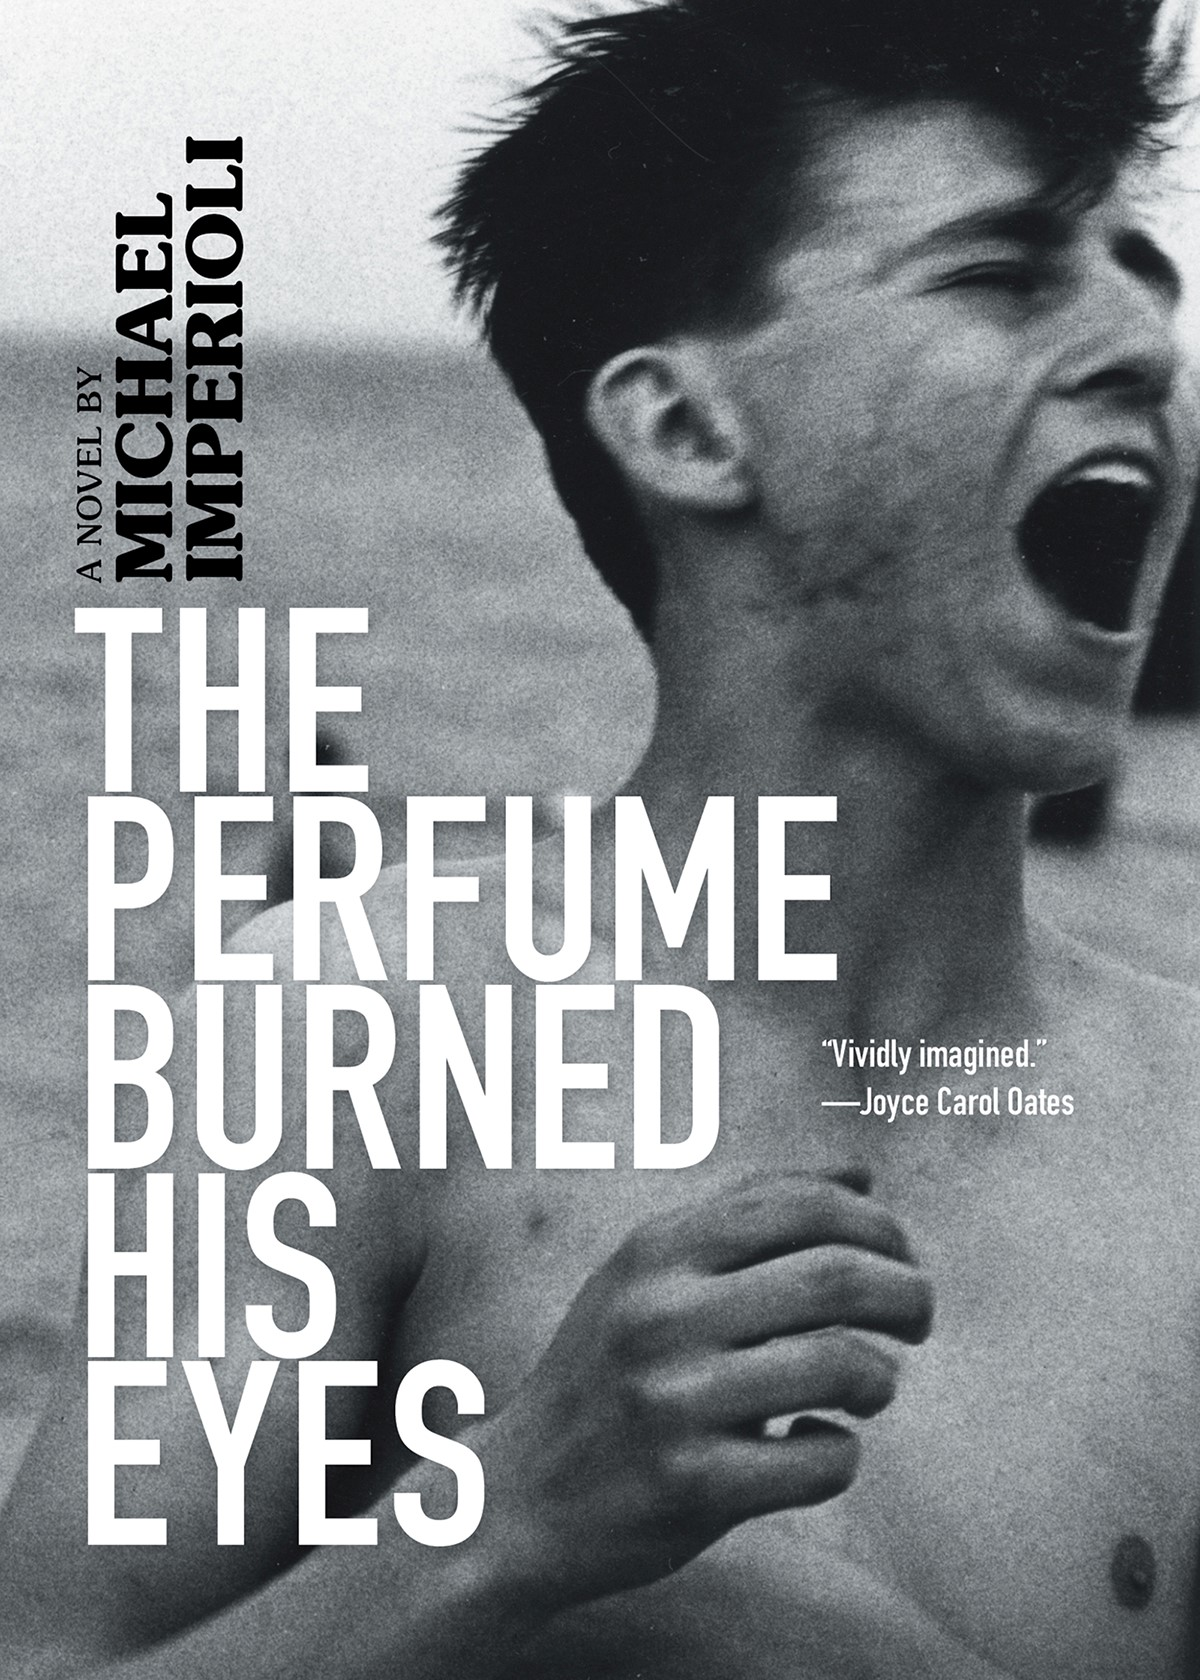 Pick up a copy of Michael's new coming-of-age novel.  Support your local independent bookseller.